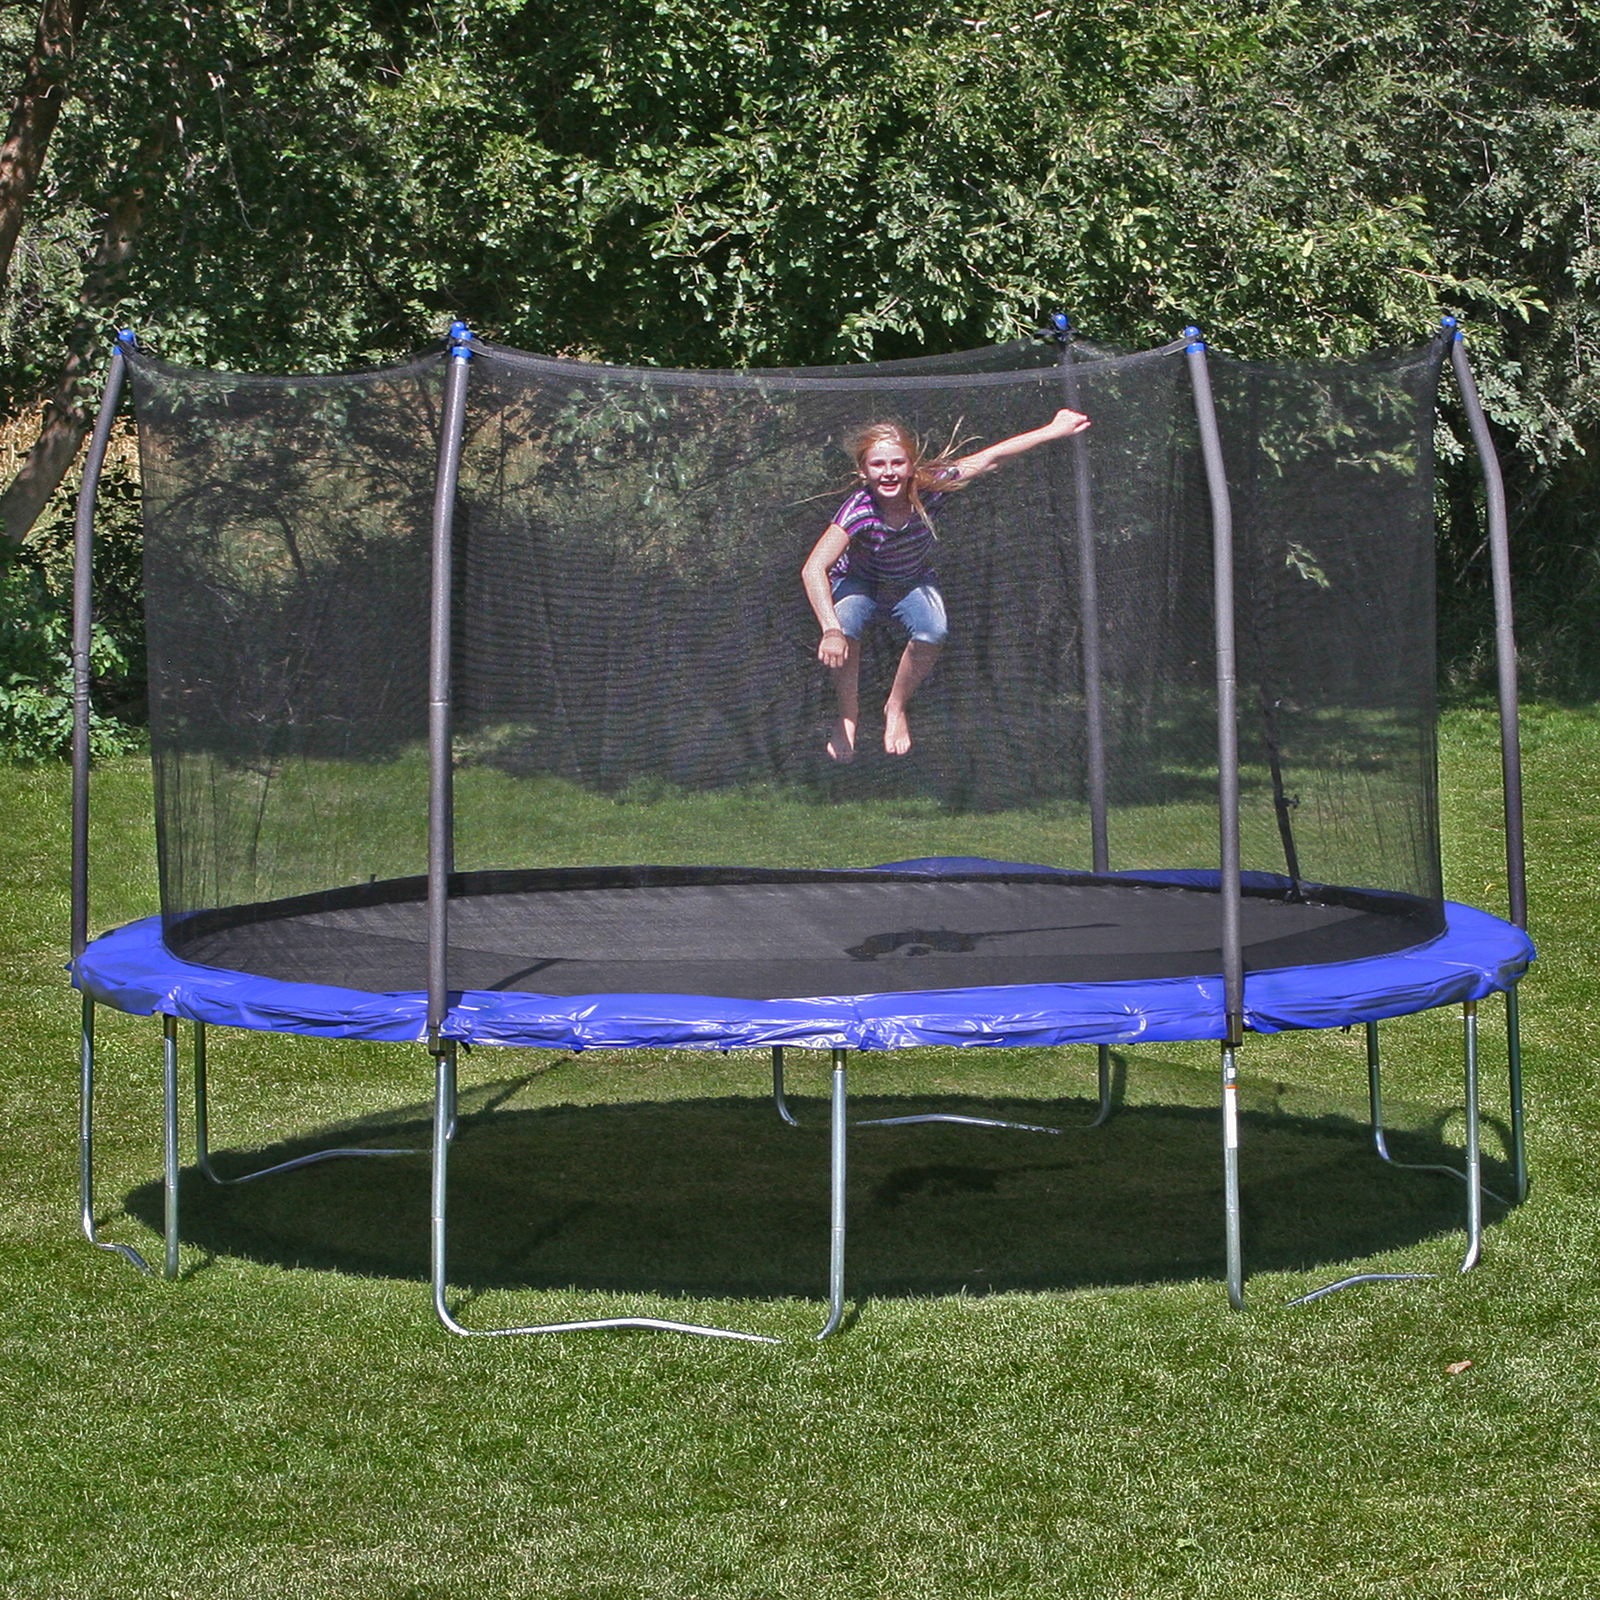 Skywalker 14 Foot Square Trampoline And Enclosure With: Skywalker Trampoline 14 Ft. Round Trampoline & Enclosure